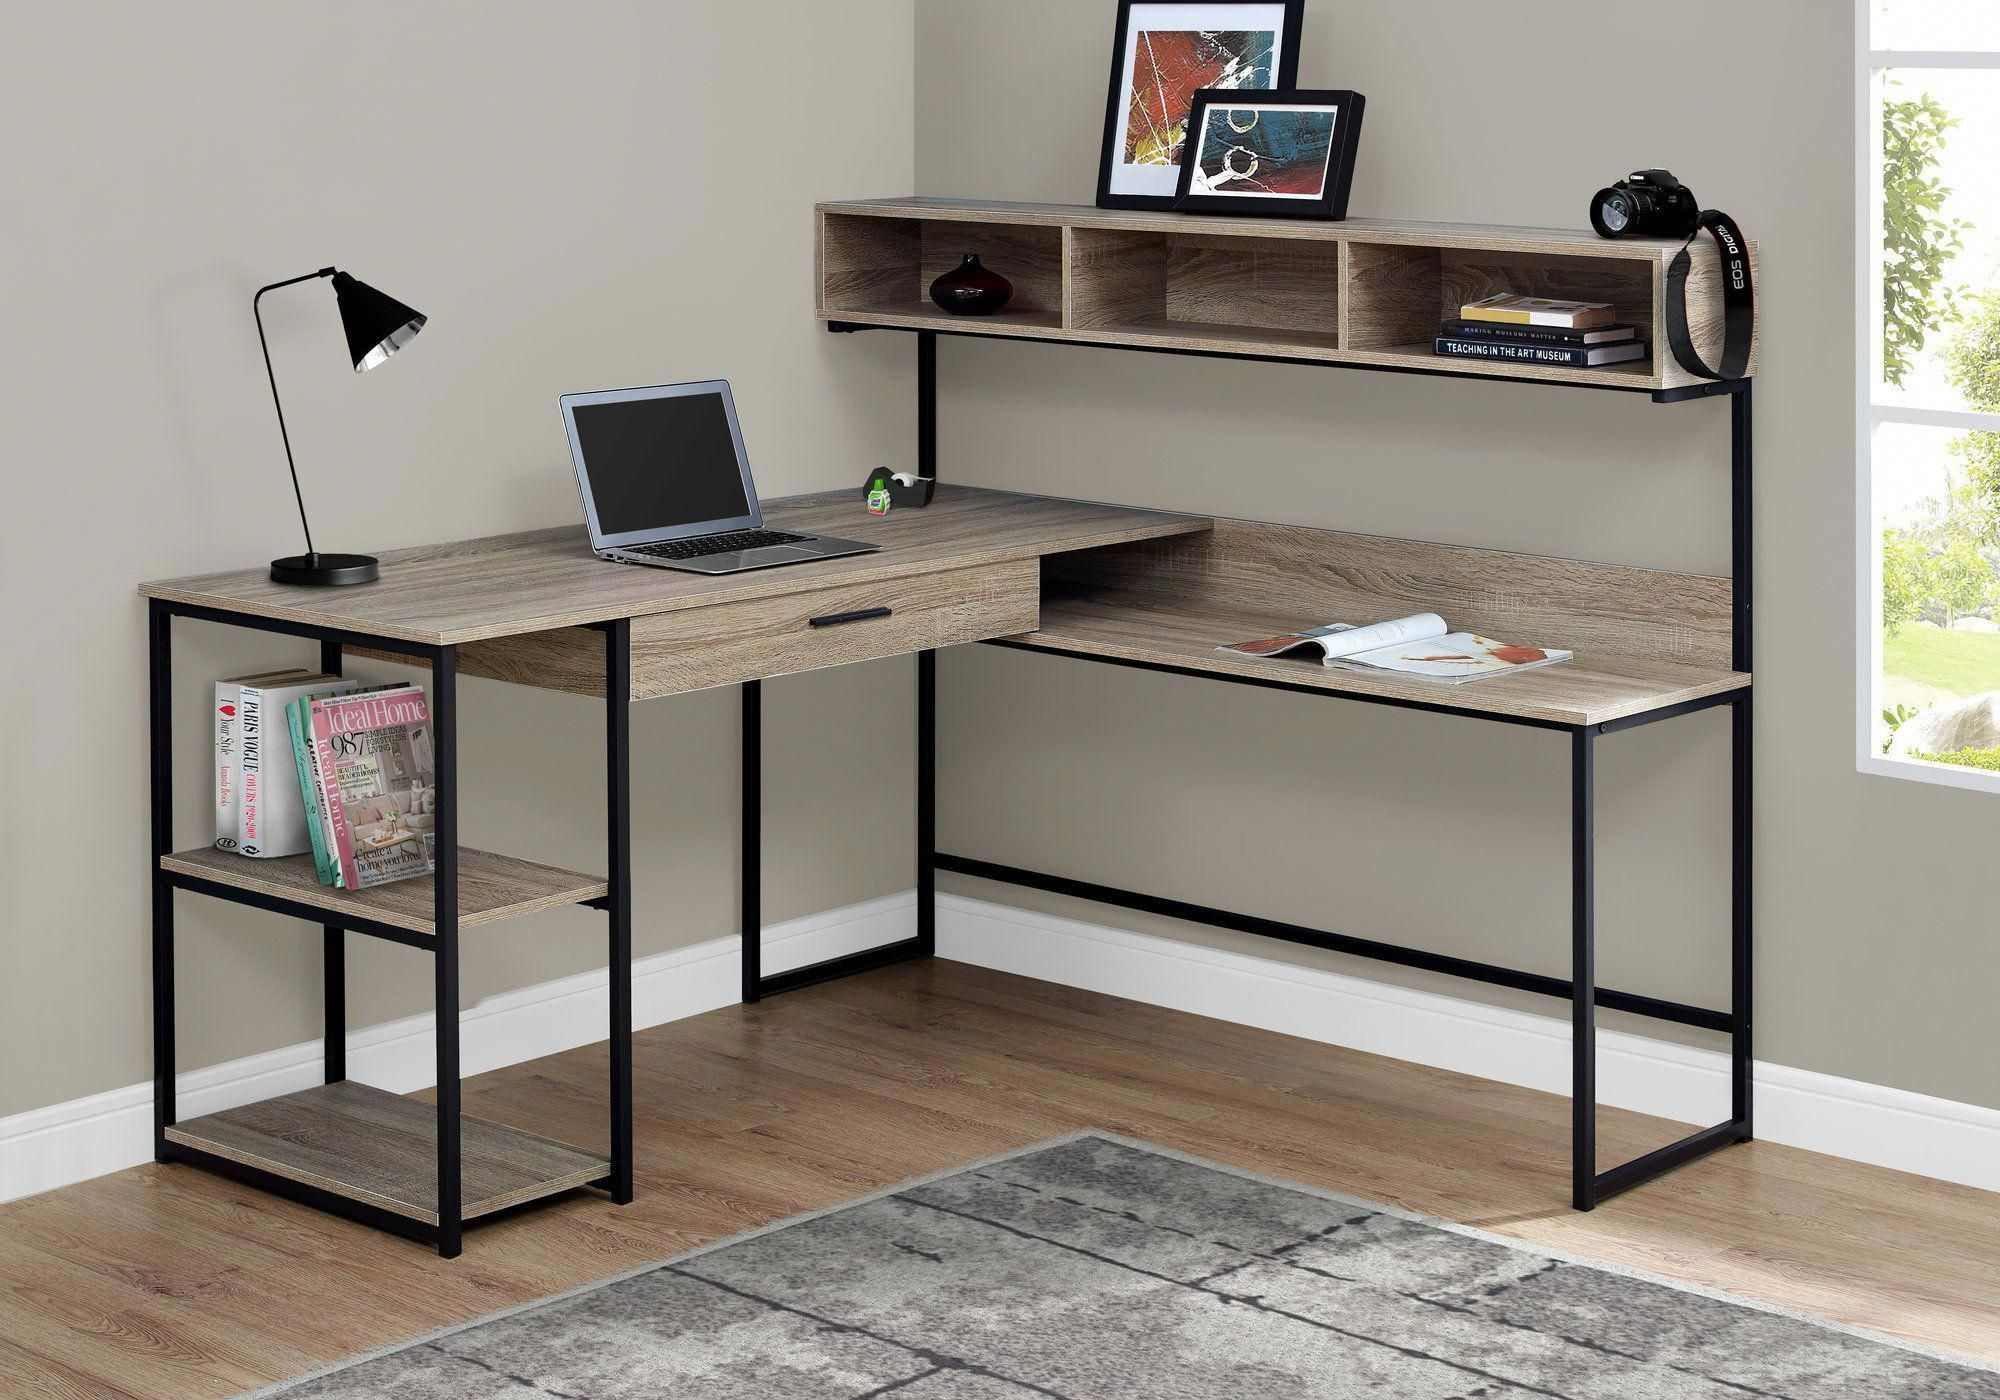 Pin On Office Furniture Design